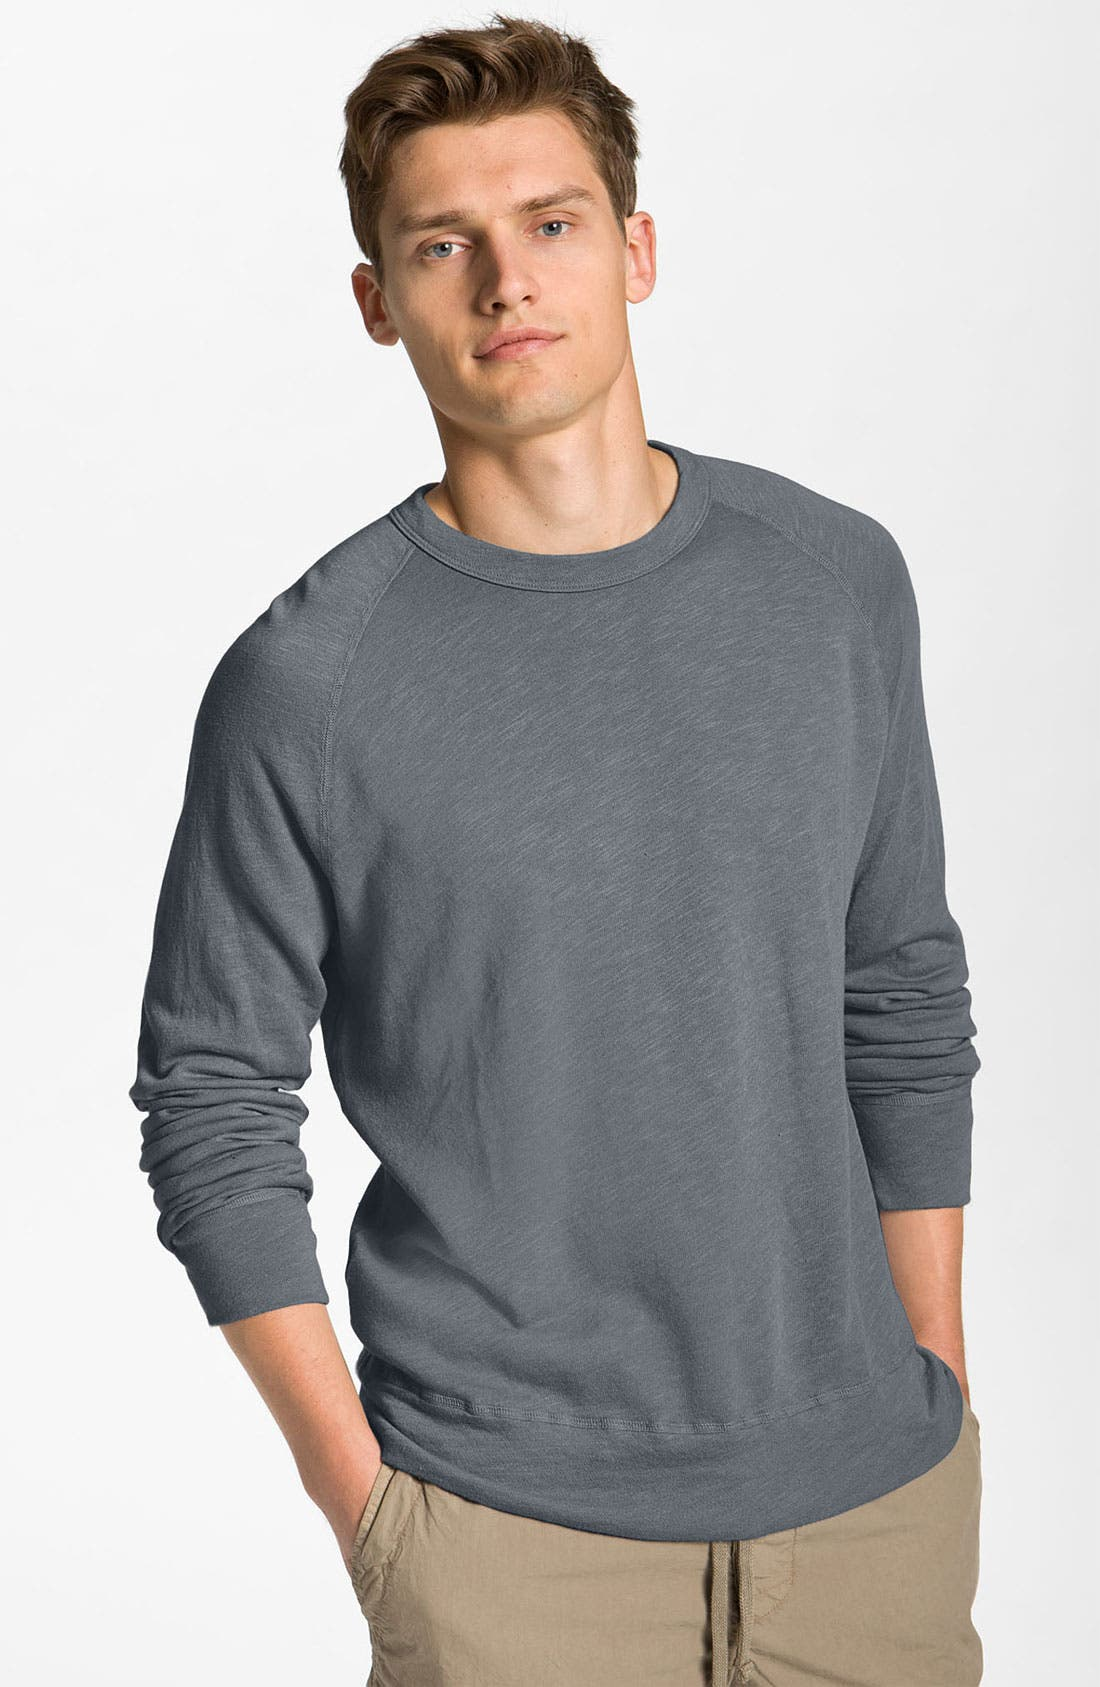 Alternate Image 1 Selected - James Perse Crewneck Sweatshirt